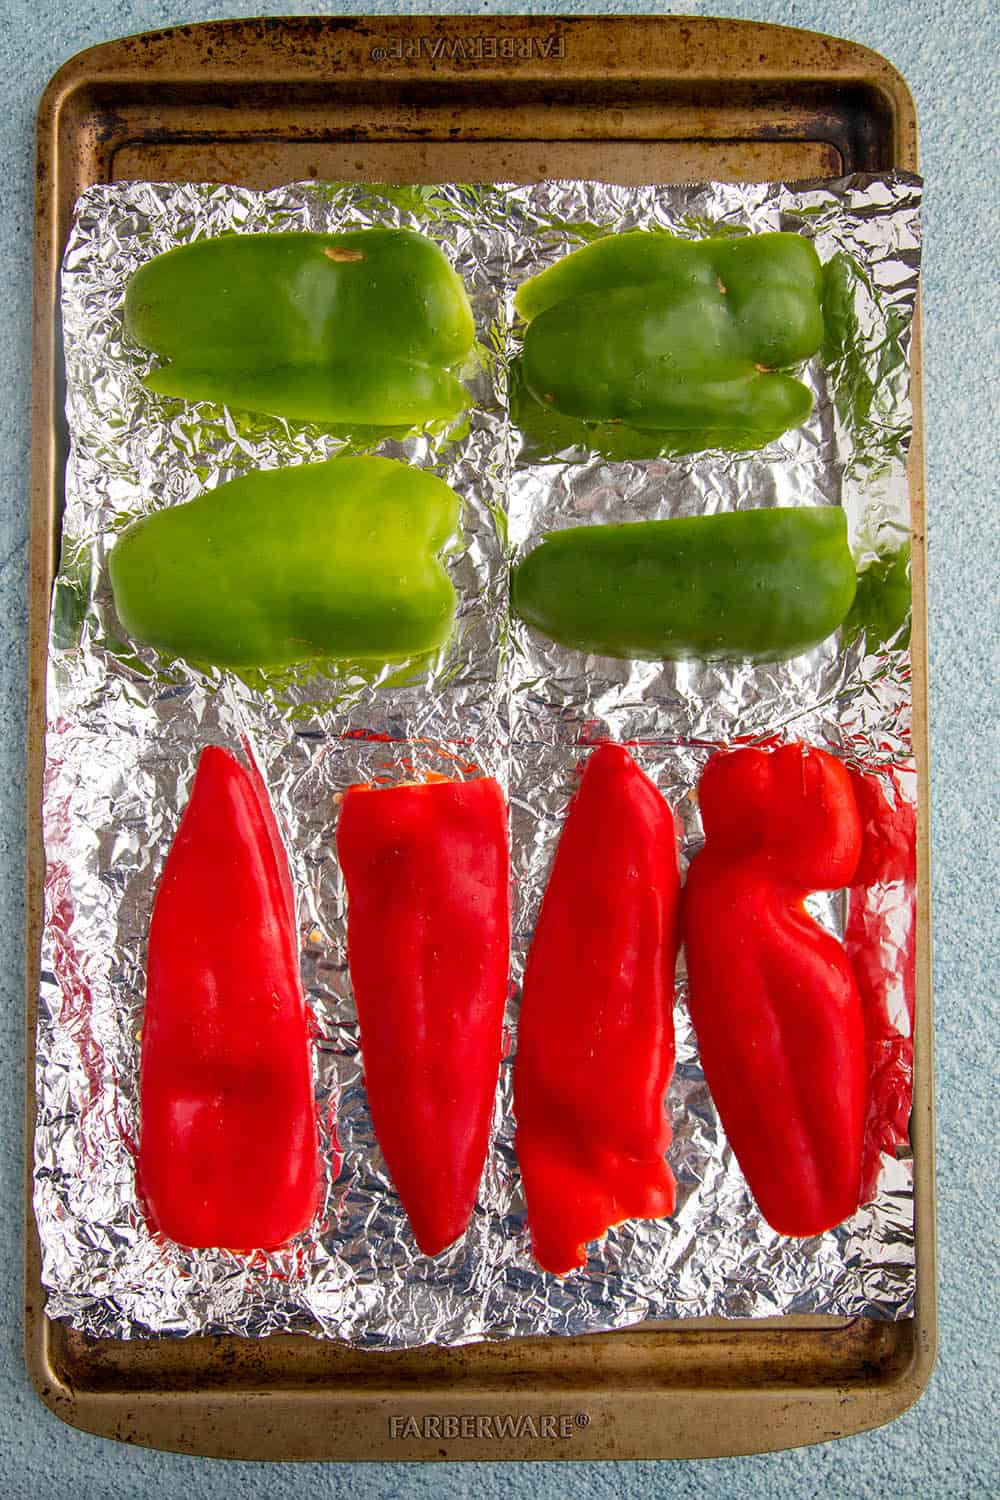 Peppers on a baking sheet, ready to roast in the oven